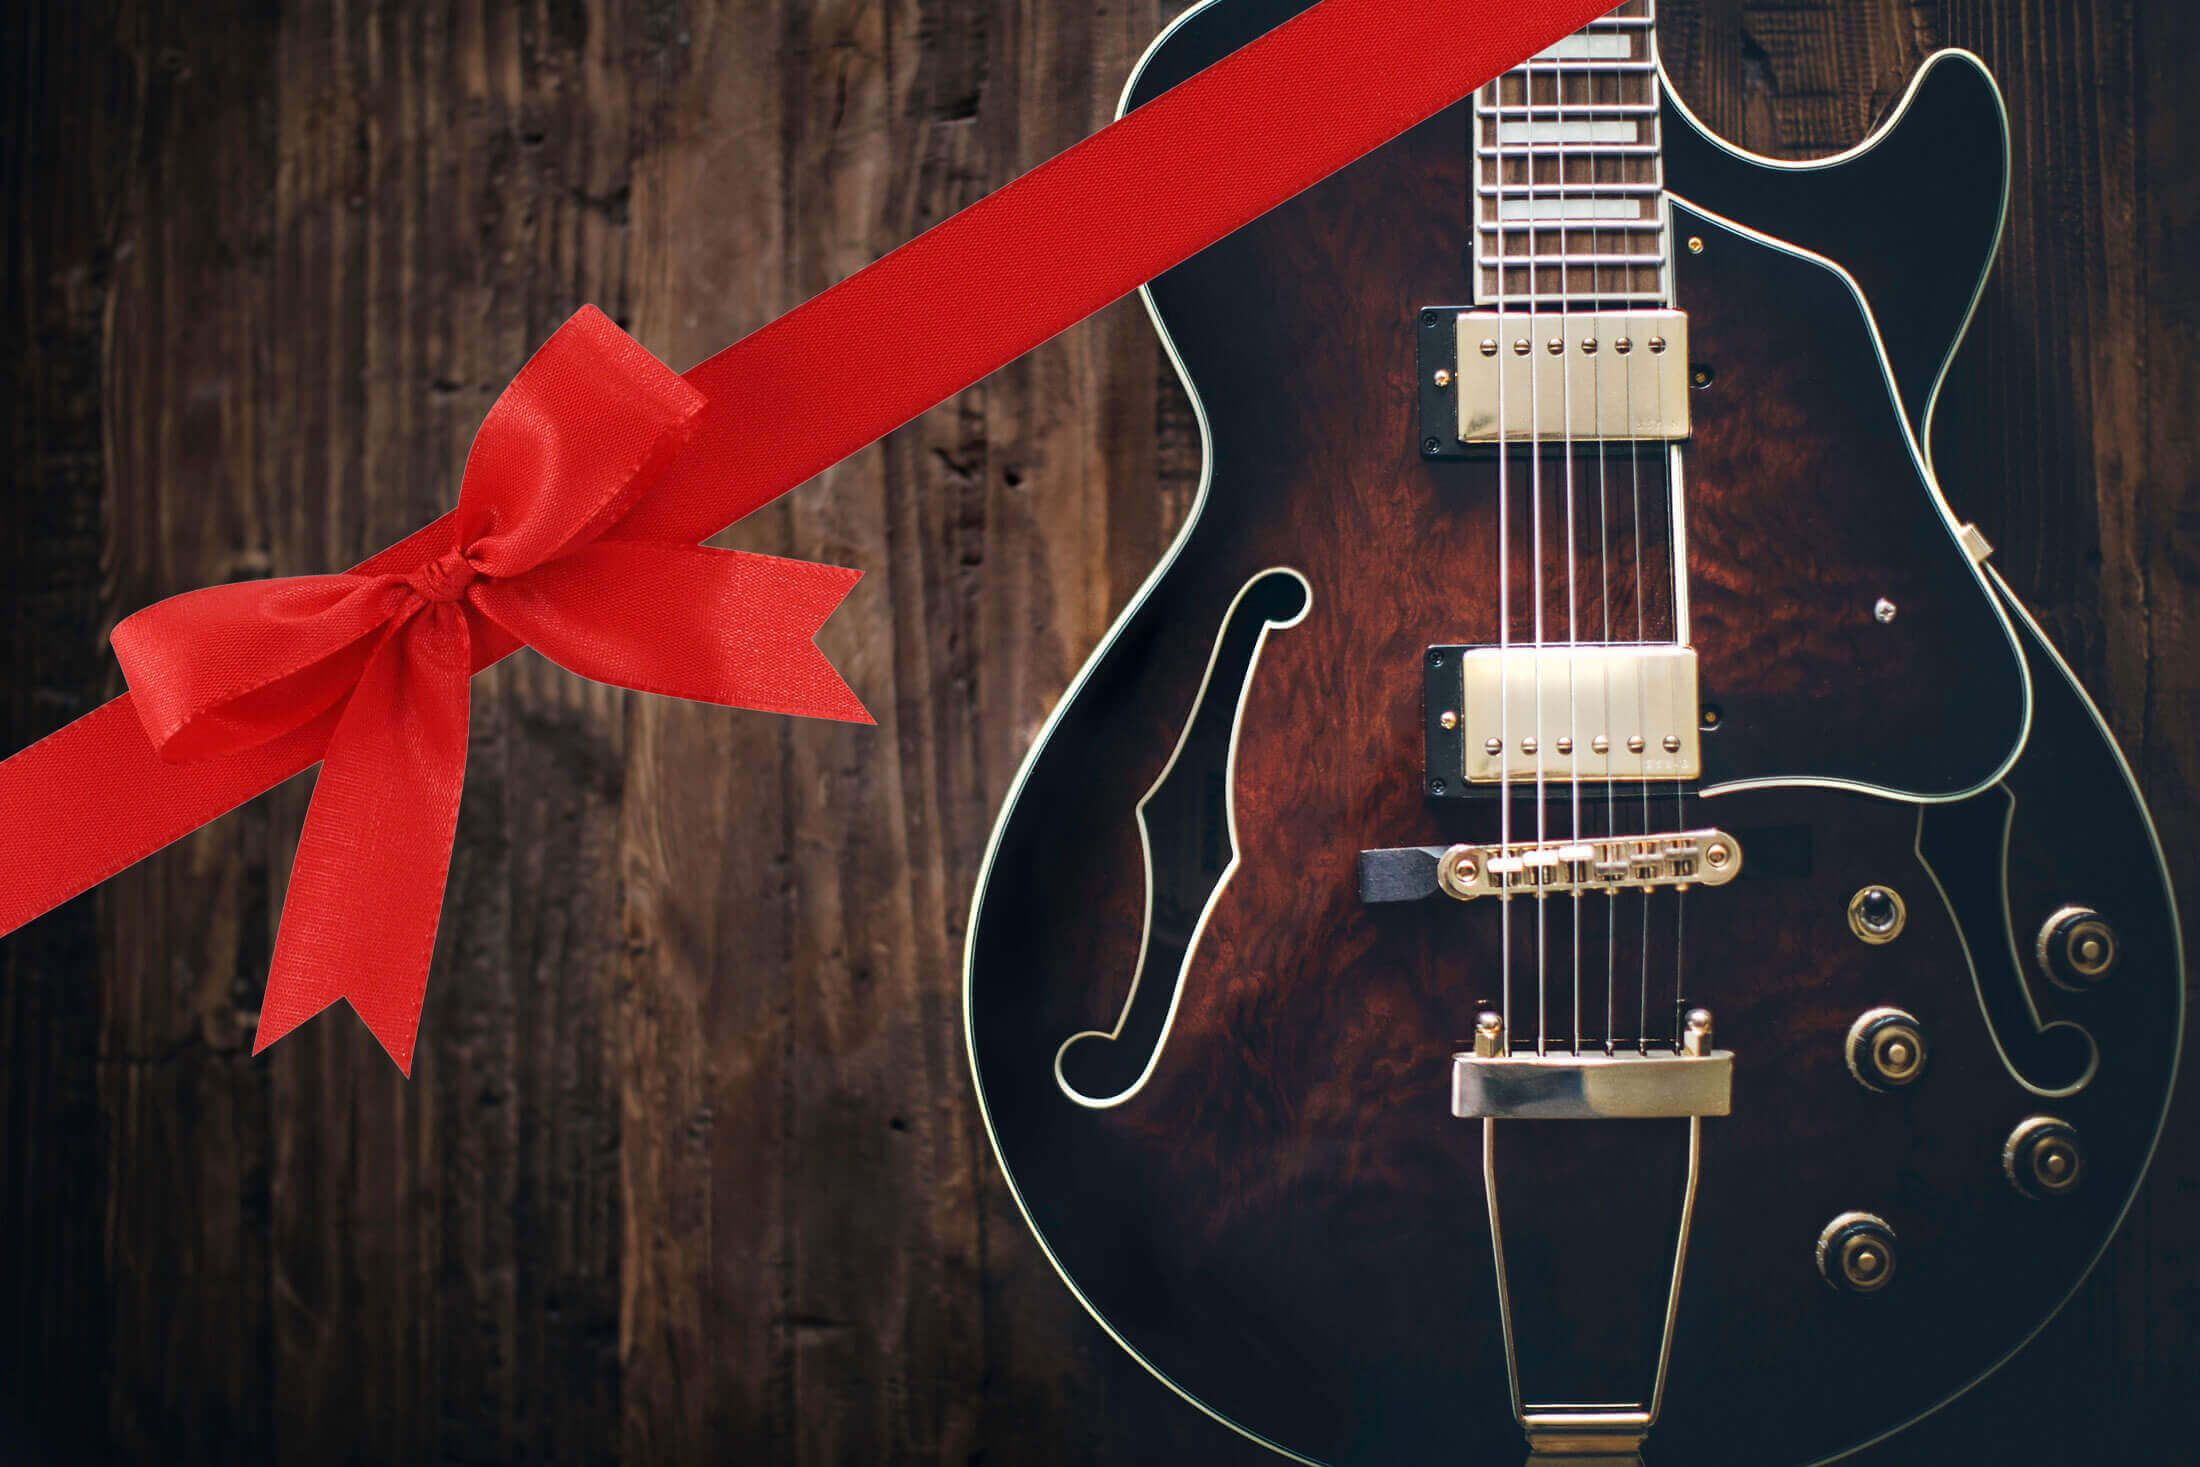 Check Out The Ultimate Guitar Gift Guide Of The Best Gifts To Get Guitar Players This Year For Christmas Chanukah Birthday Jazz Guitar Guitar Electric Guitar